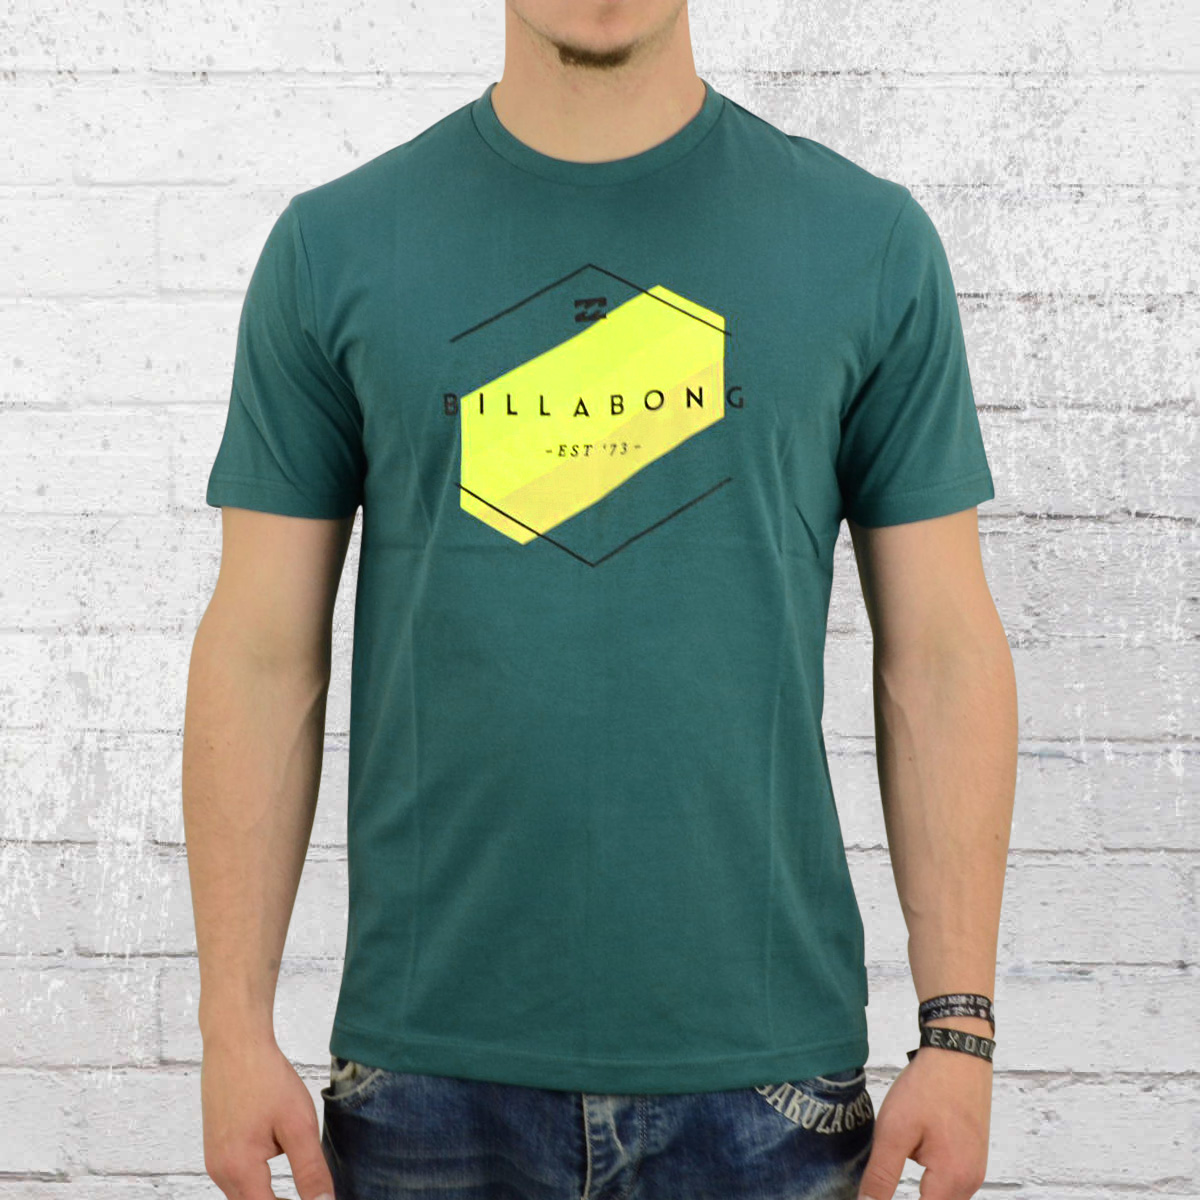 billabong tshirt  Order now | Billabong Men T-Shirt Obstacle petrol